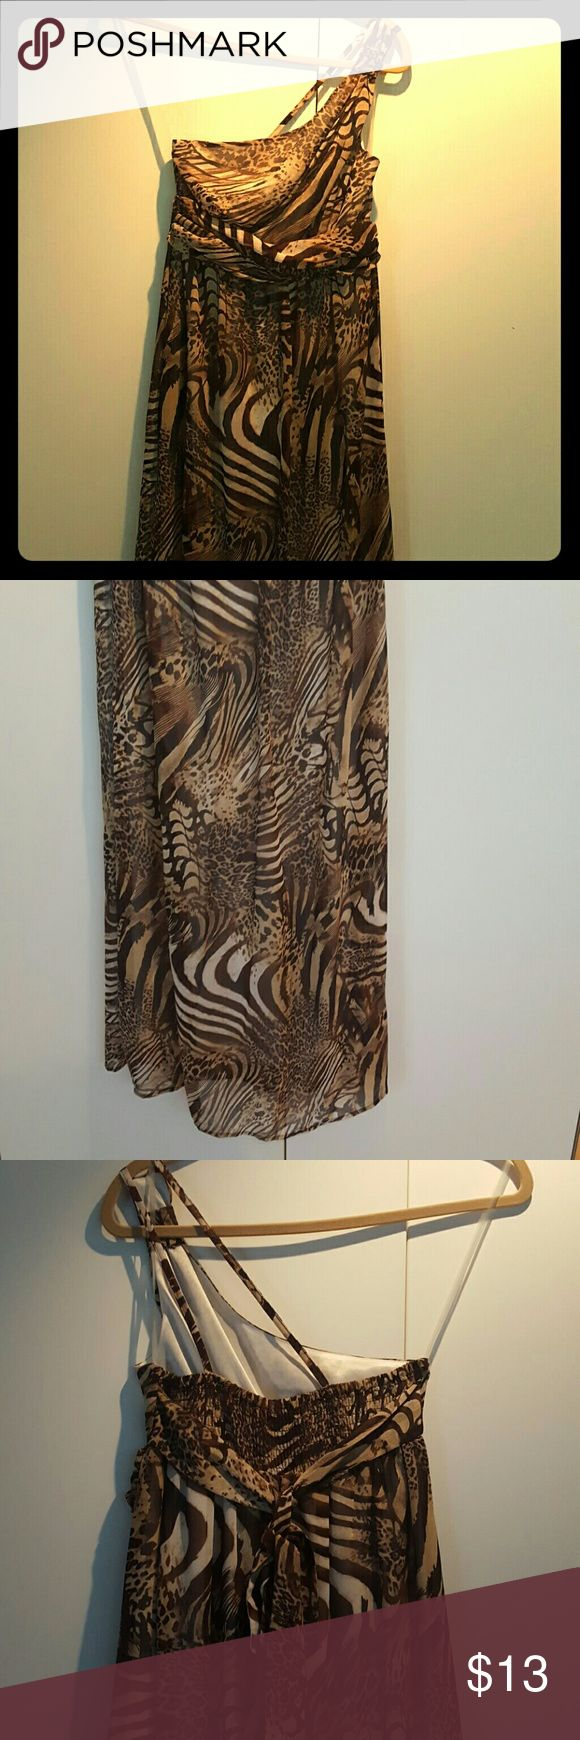 Brown & Beige animal print maxi dress Black & Beige one shoulder animal print maxi dress. Back of bodice is elasticized.  Gathered look detail under breast area and ties in back. Grassroots Dresses Maxi